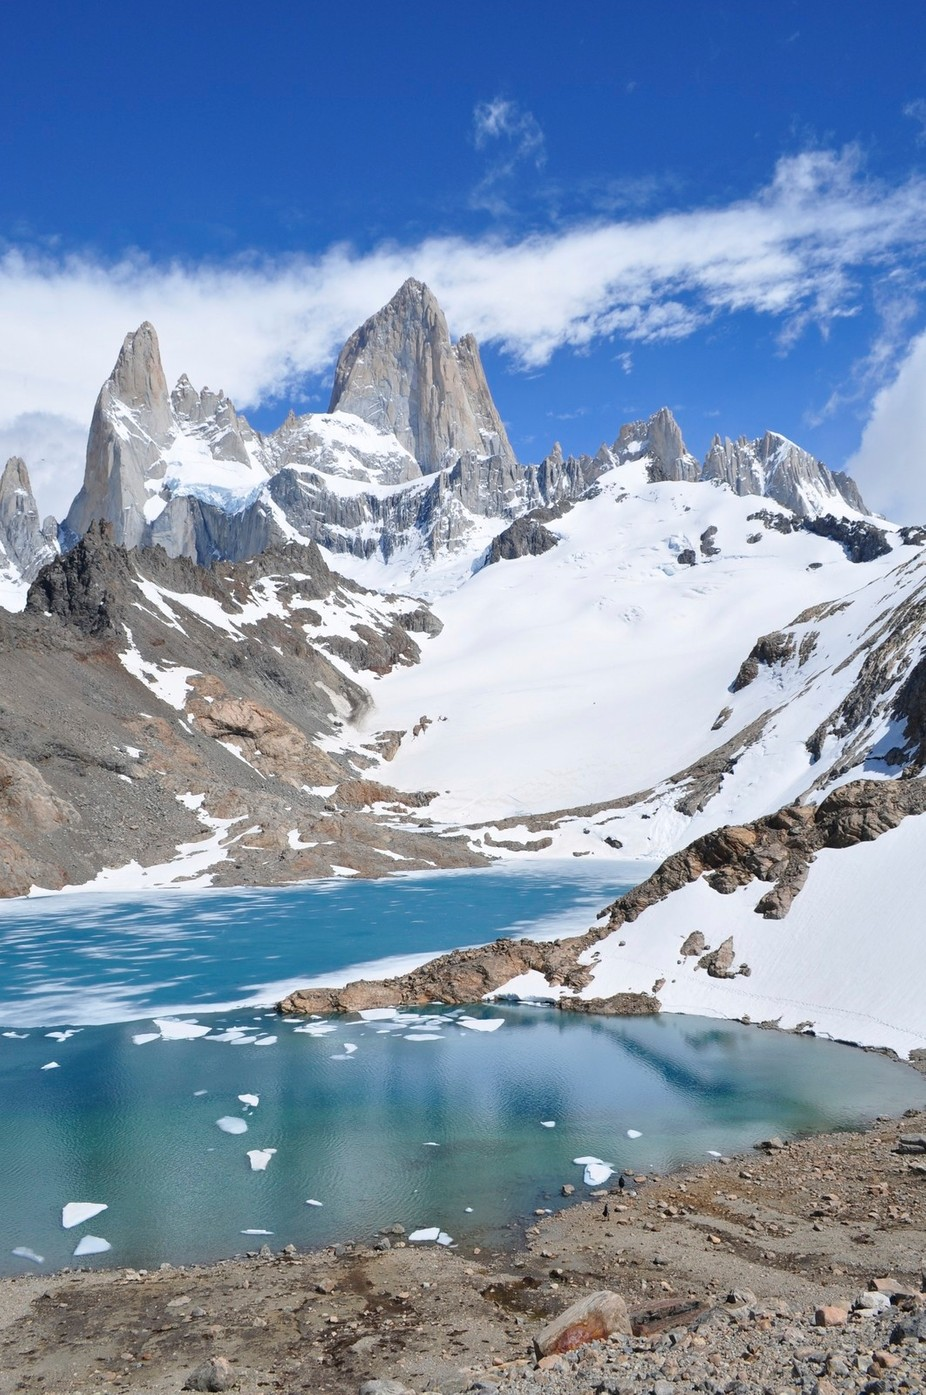 Mount Fitzroy and the glacial lake, El Chalten, Patagonia, Argentina.